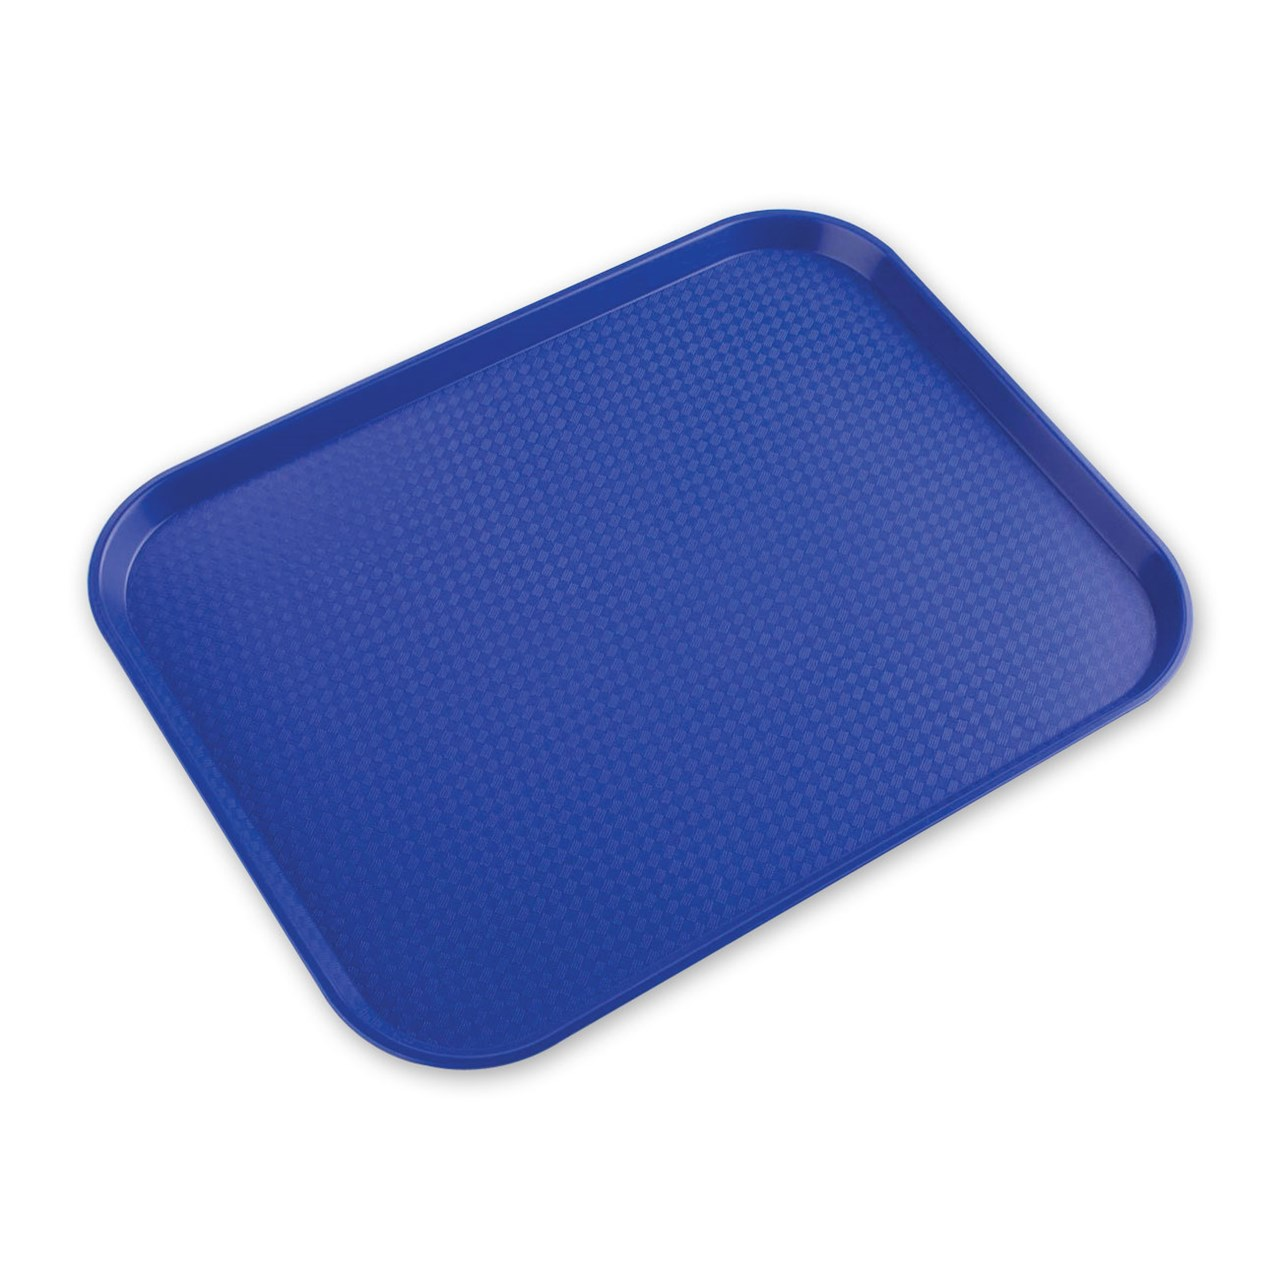 Cafeteria Tray - Blue - 11-in x 14-in